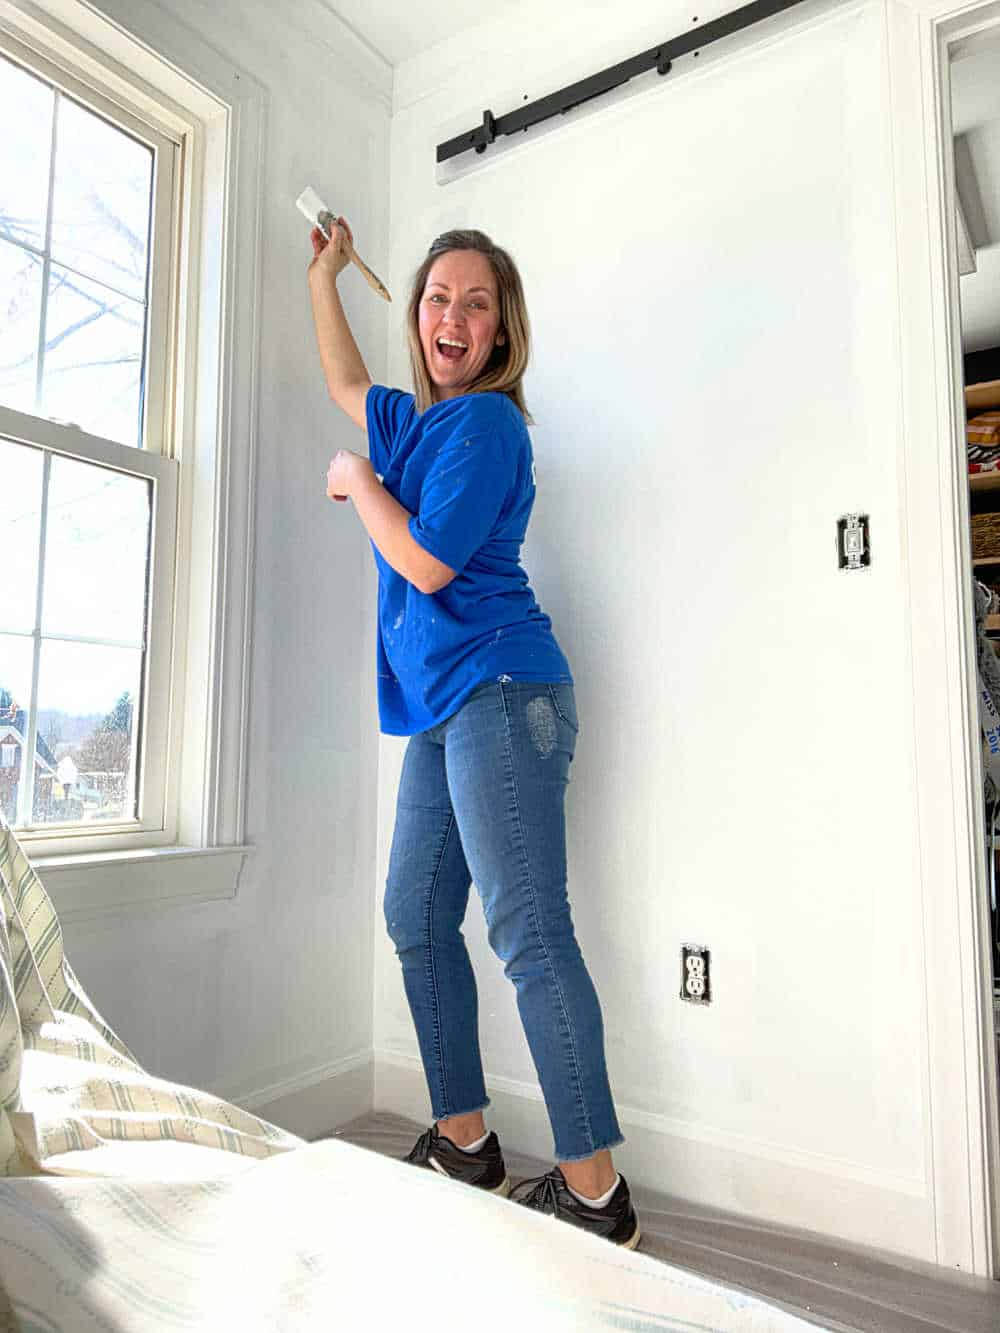 How to paint a room top to bottom for beginners